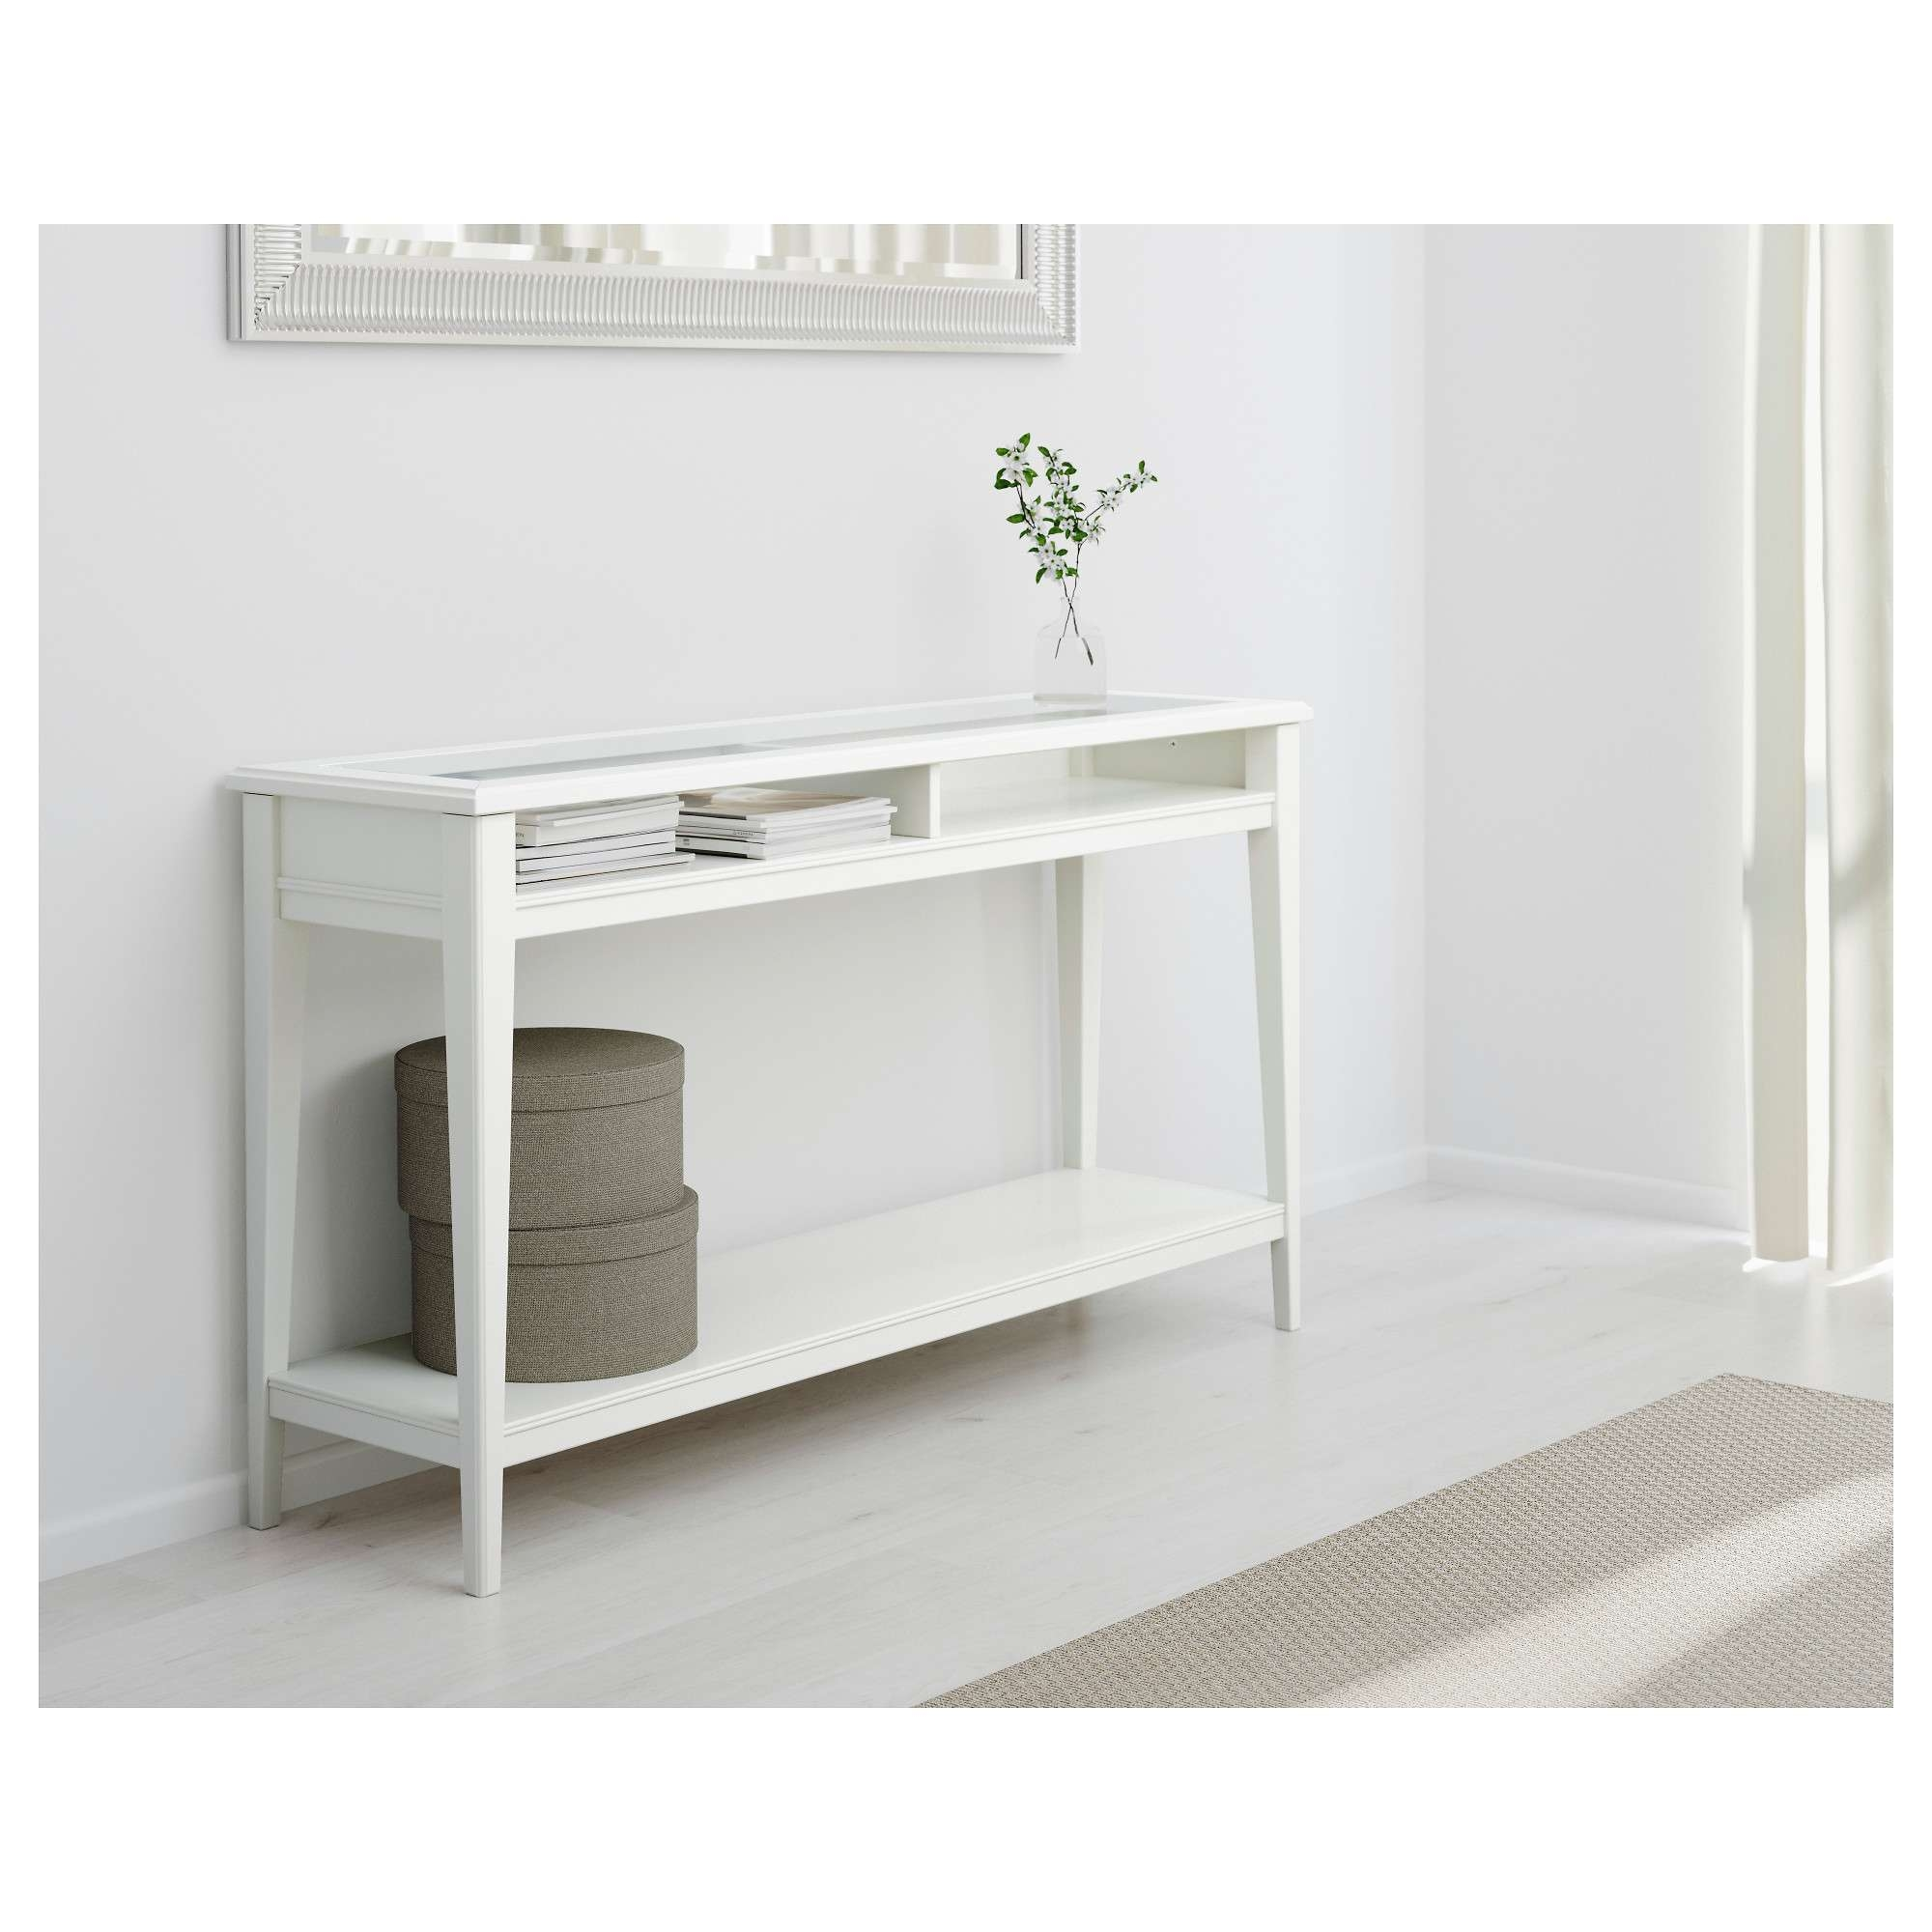 Ikea Sideboard 2019 Popular Liatorp Sideboards